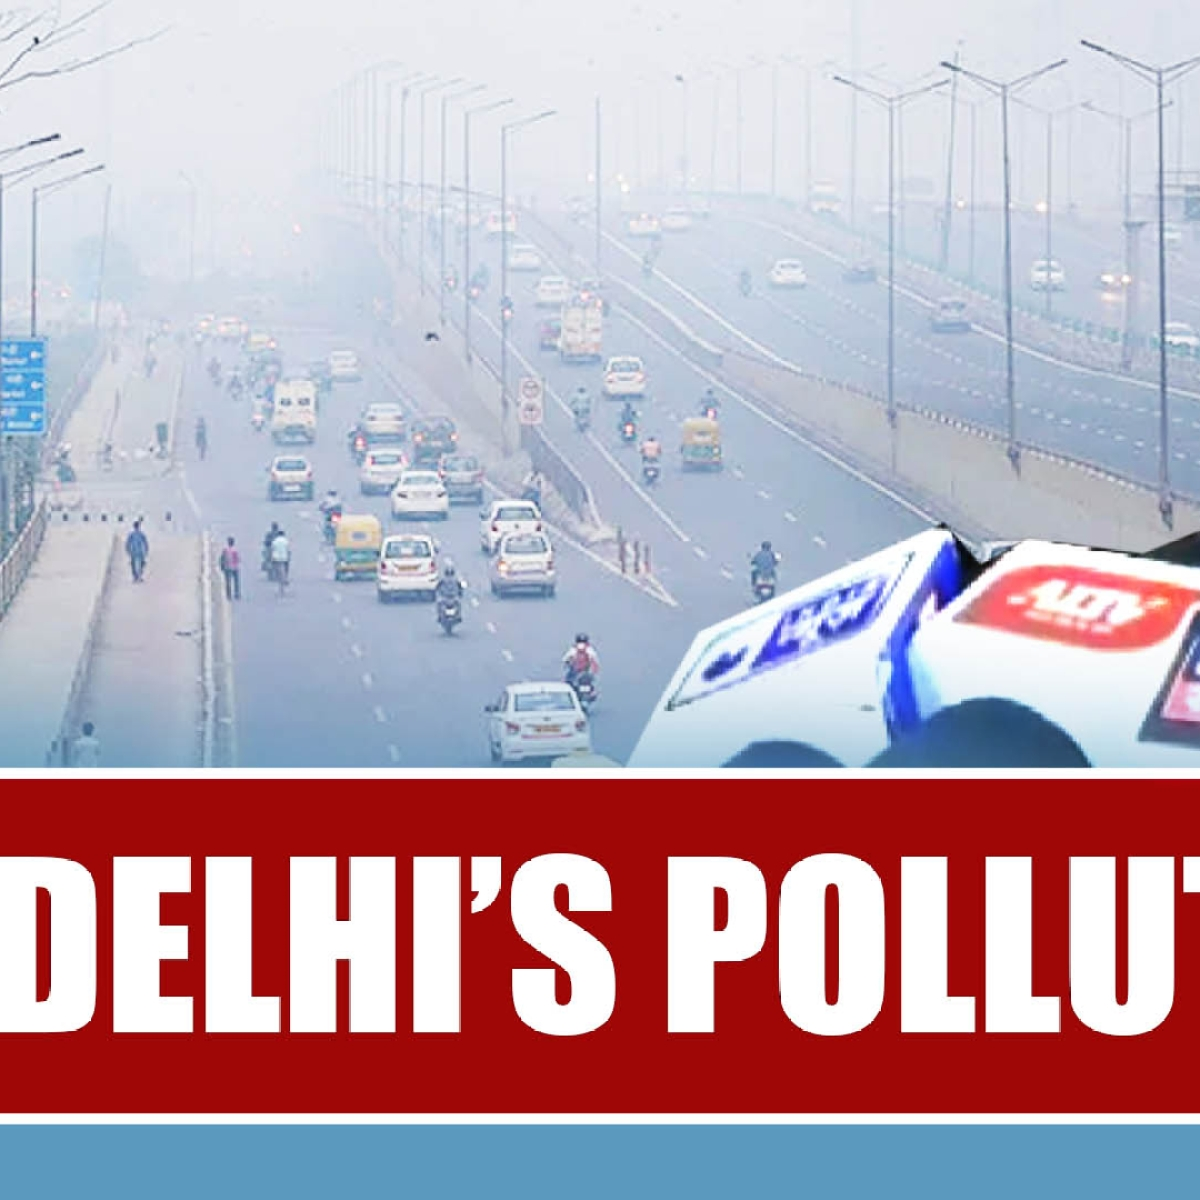 Delhi's Pollution Is Approaching Jaipur, Permanent Solution Needed: CM Ashok Gehlot